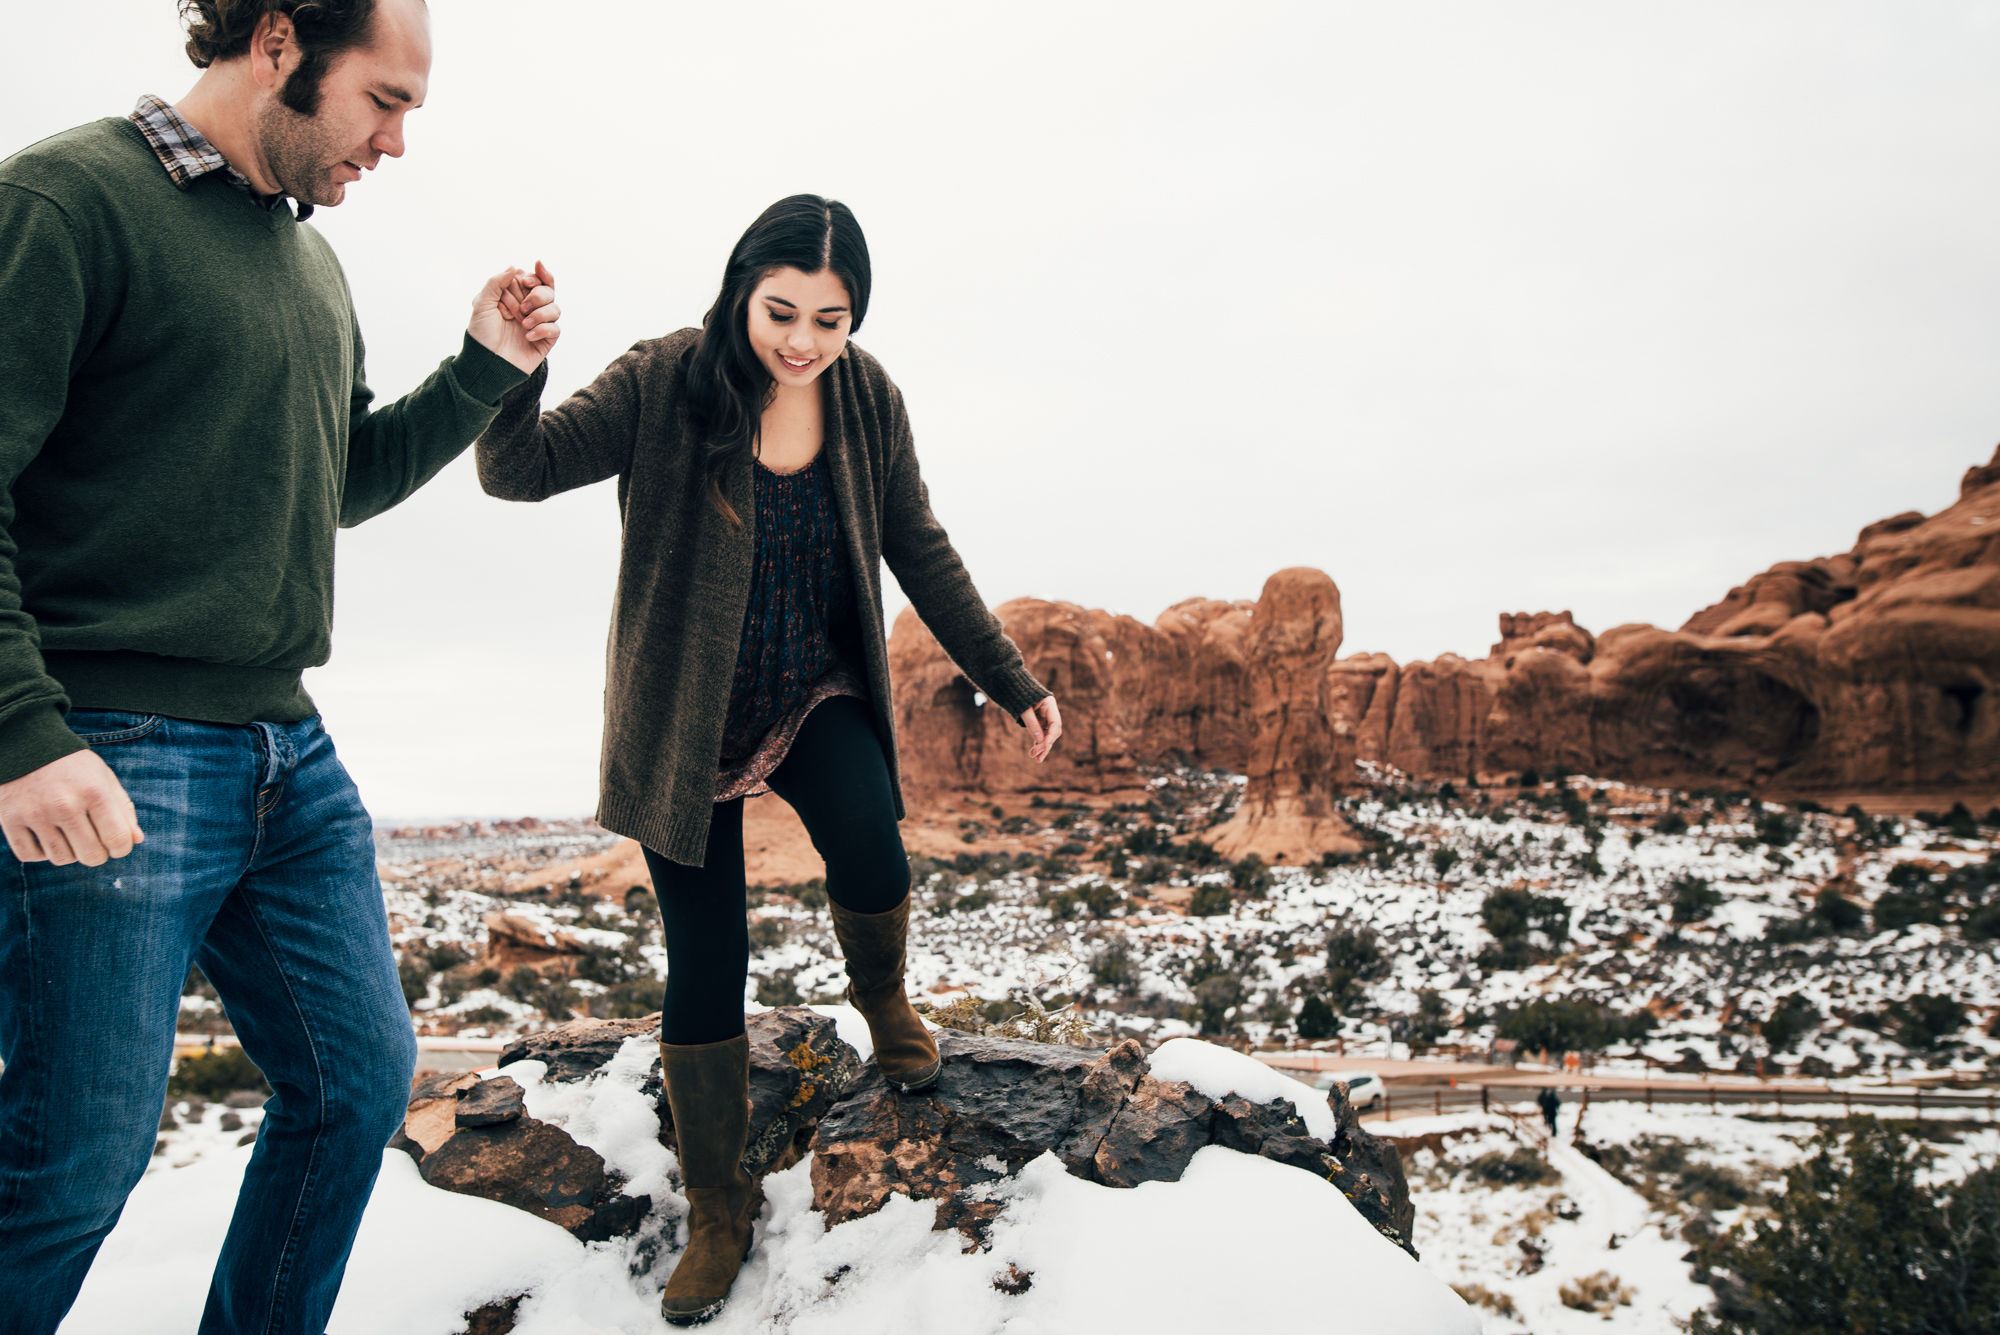 ©Isaiah & Taylor Photography - Arches National Park Adventure Engagement, Moab Utah-006.jpg